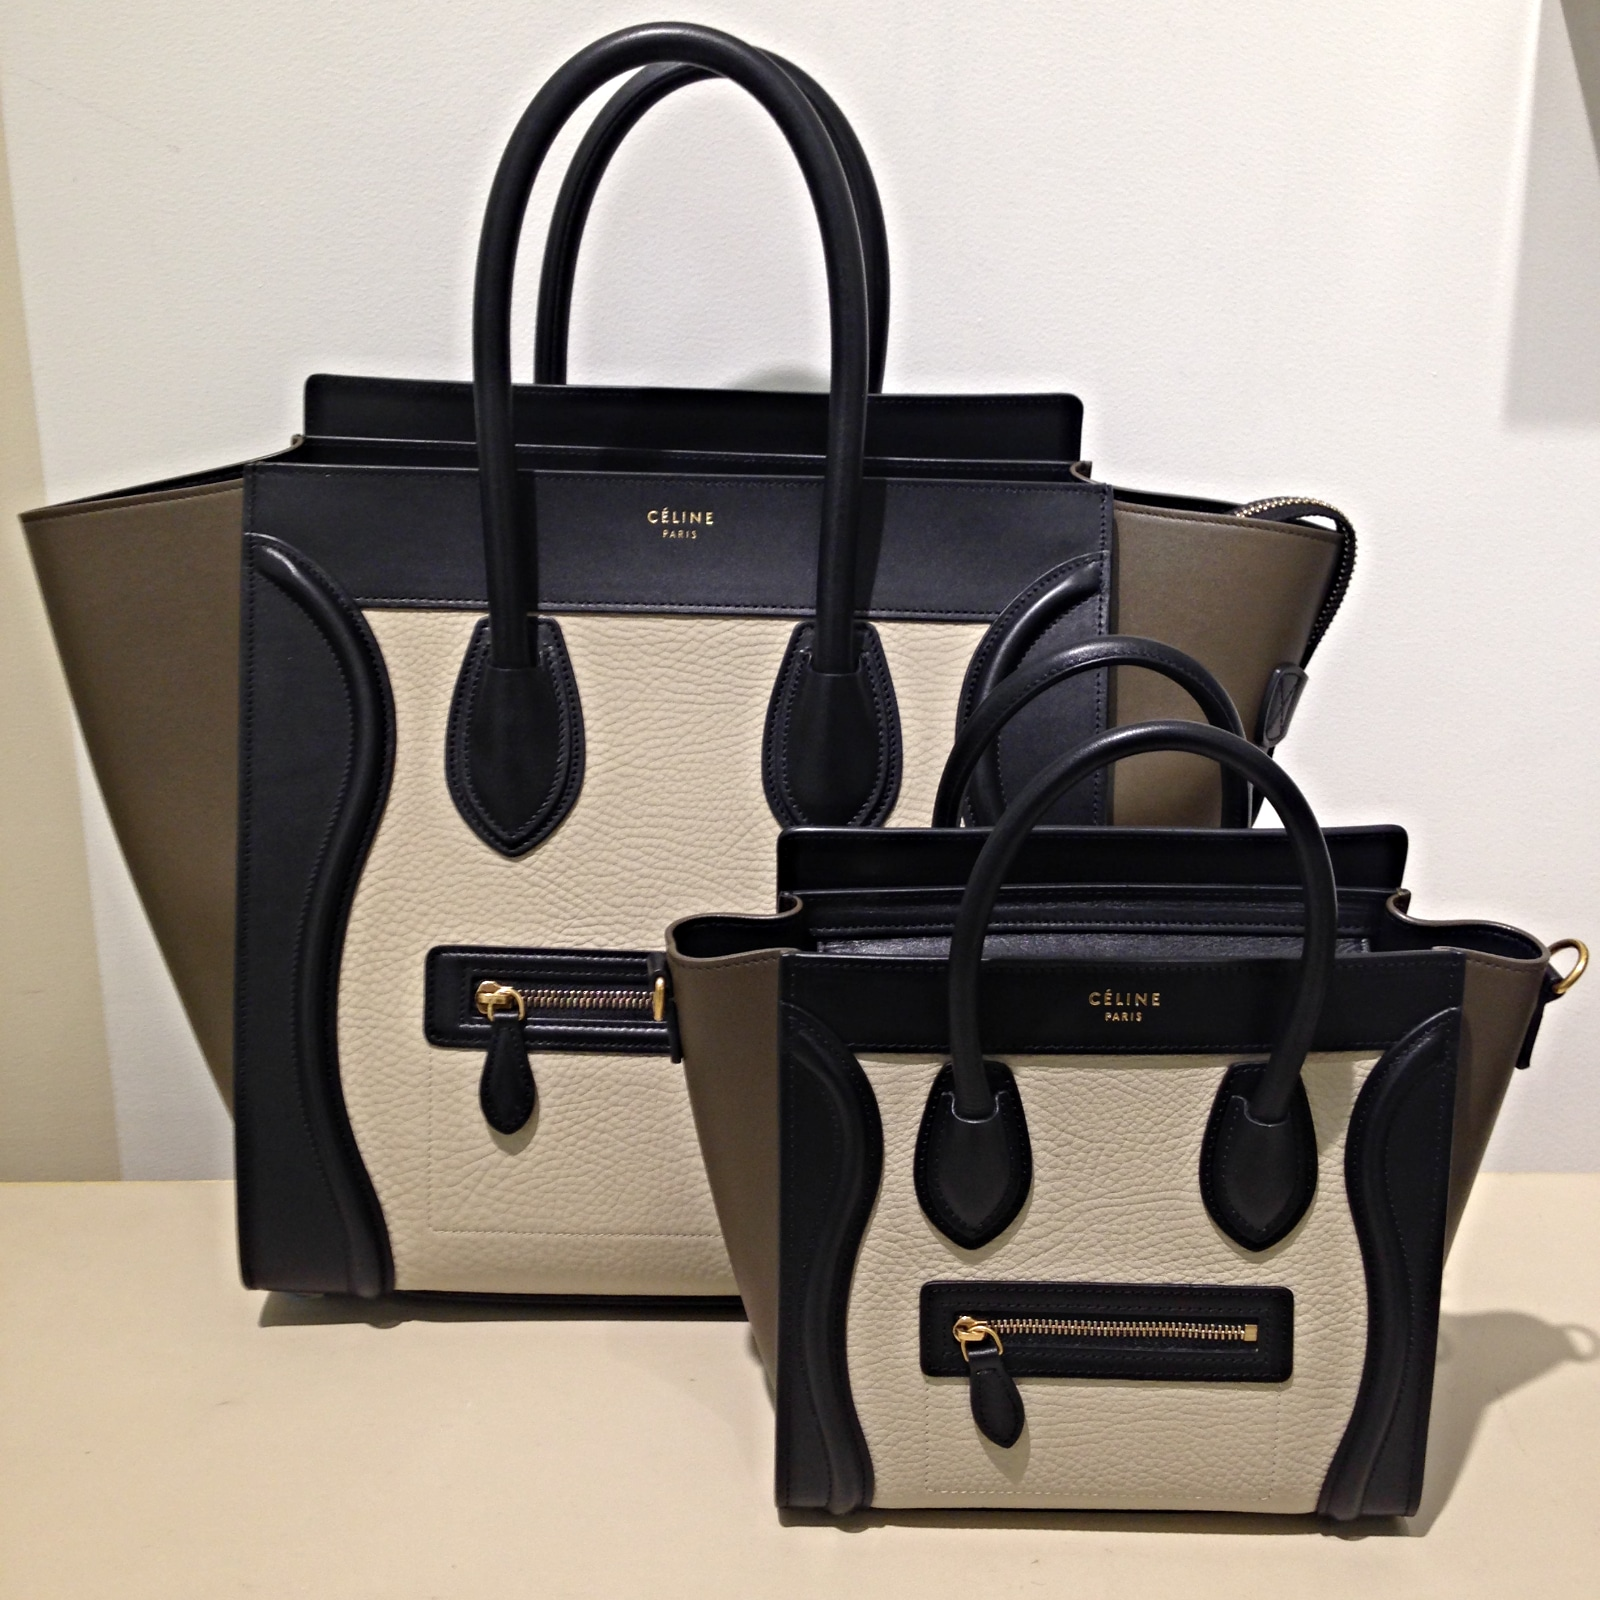 cost of celine bag - Celine Nano Luggage Tote Bag Reference Guide | Spotted Fashion